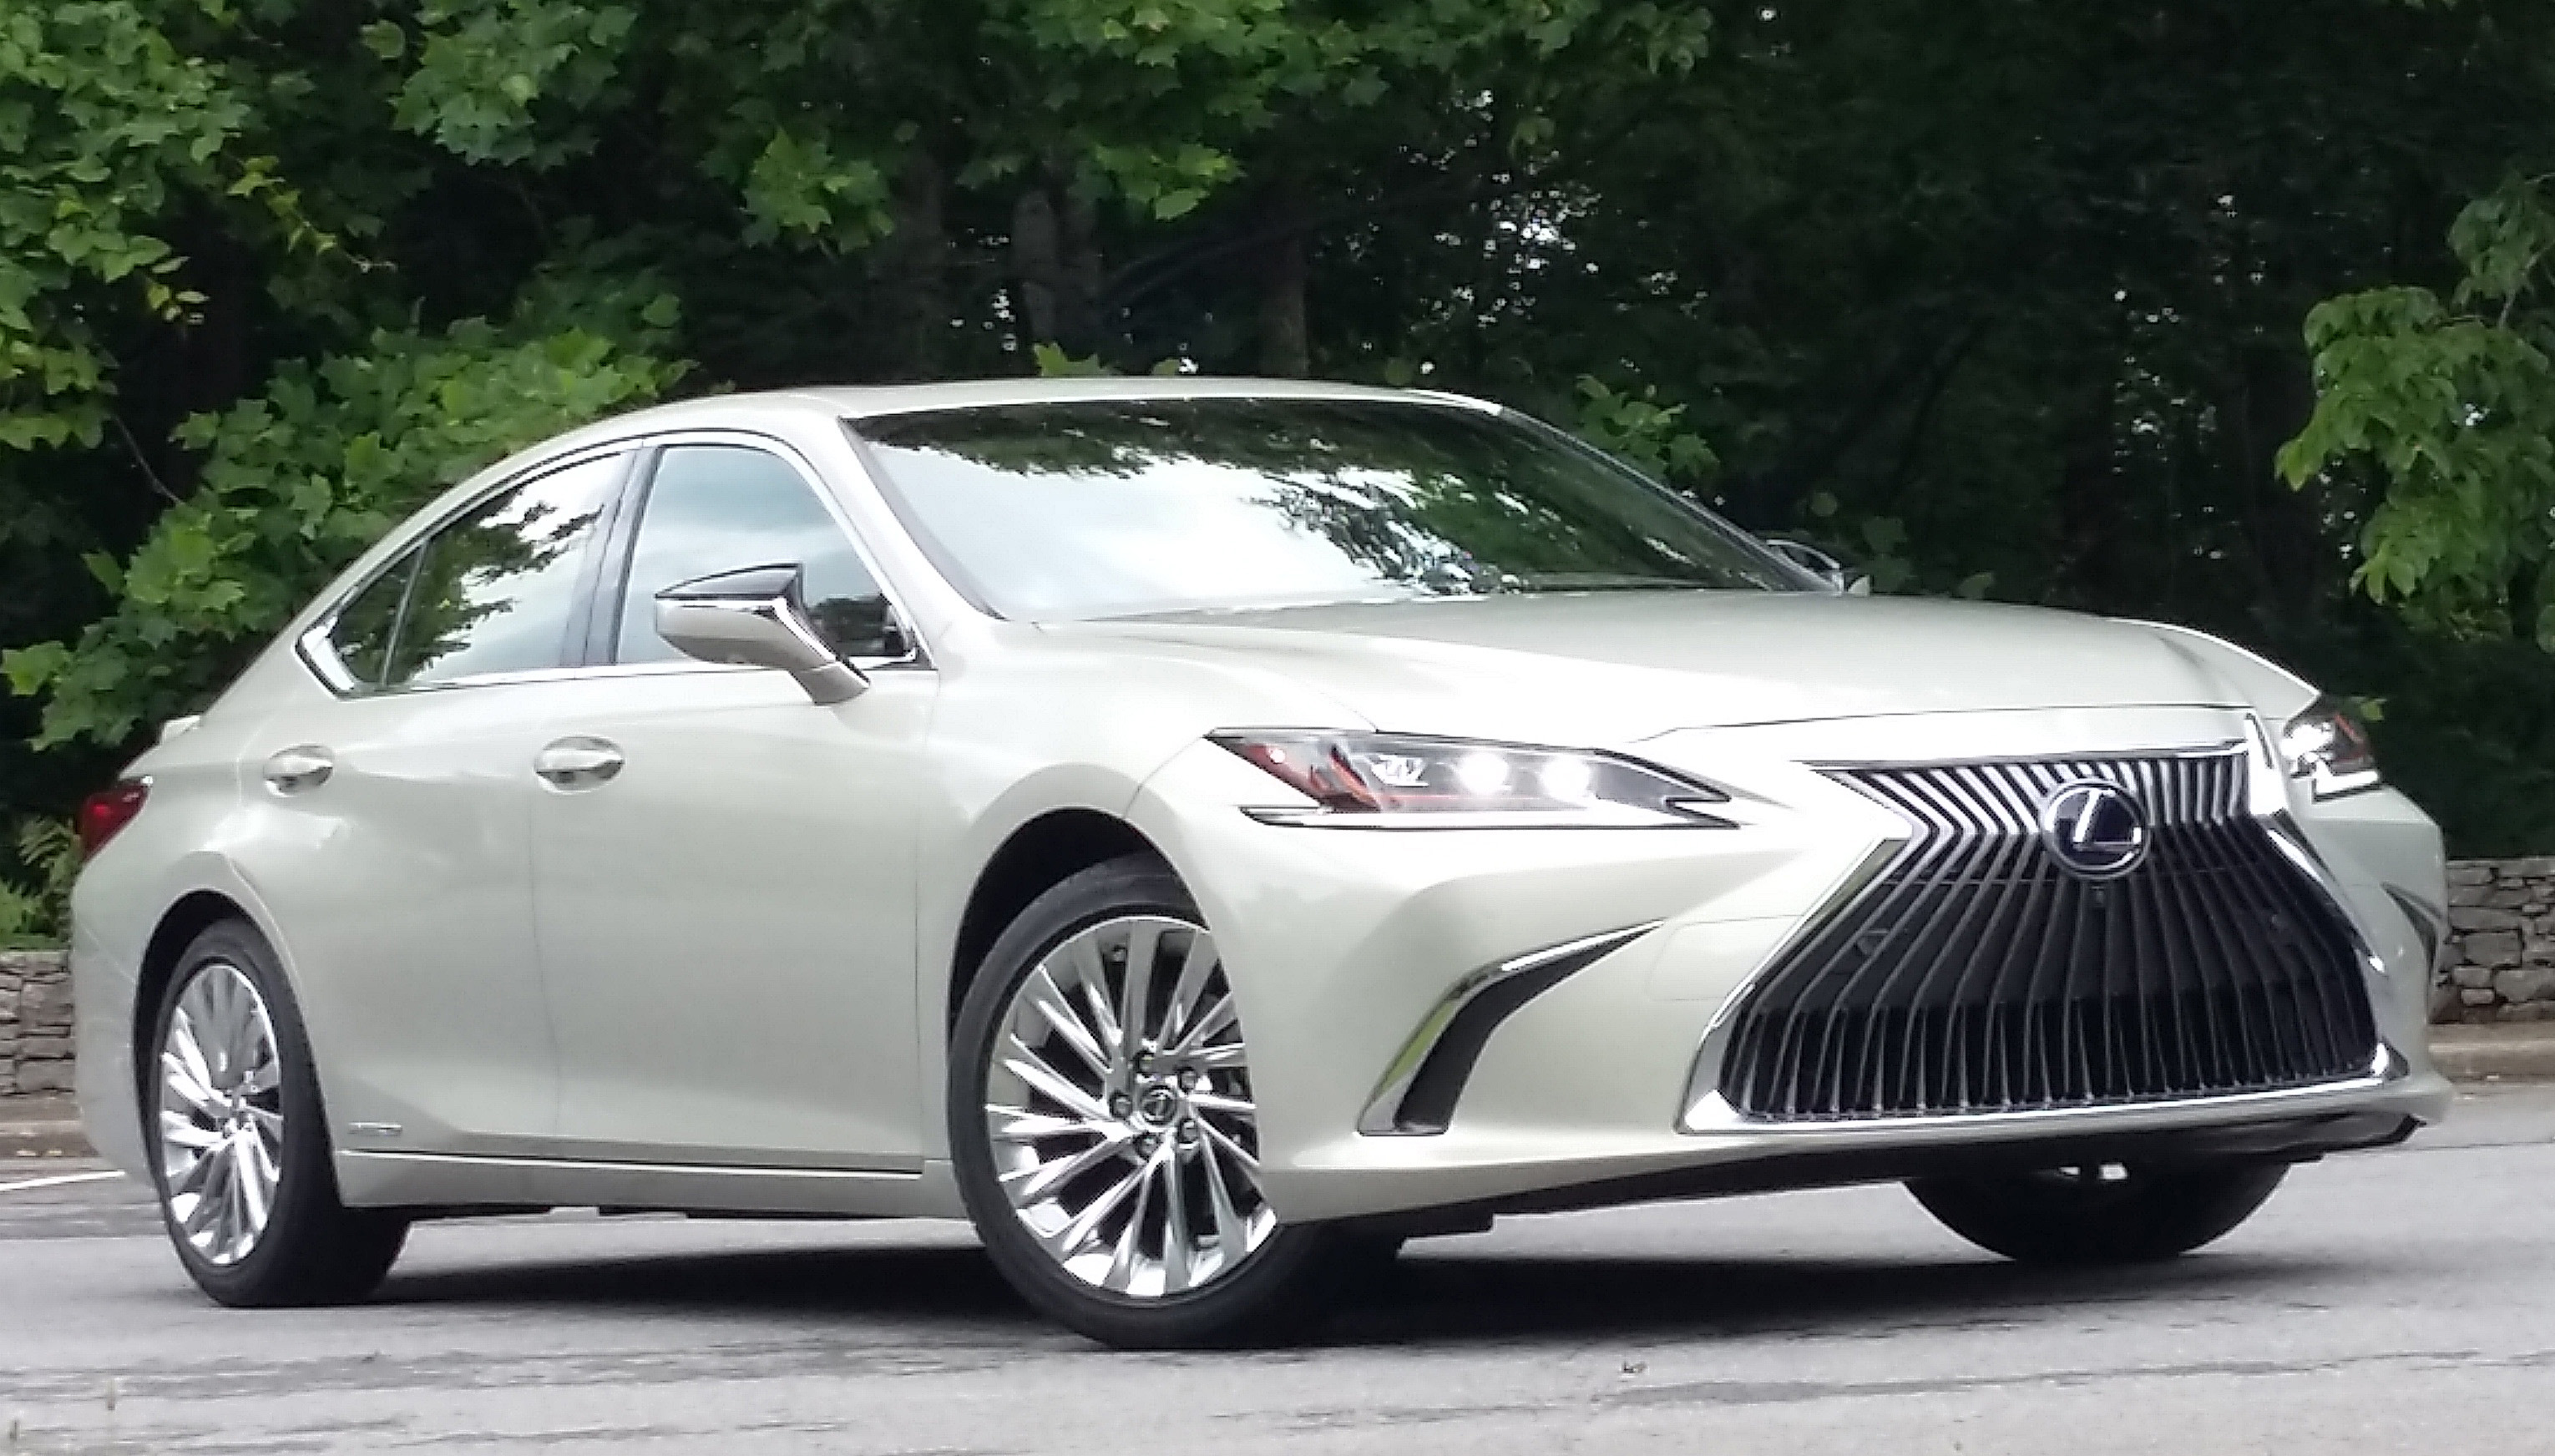 2019 Lexus ES The Daily Drive | Consumer Guide®